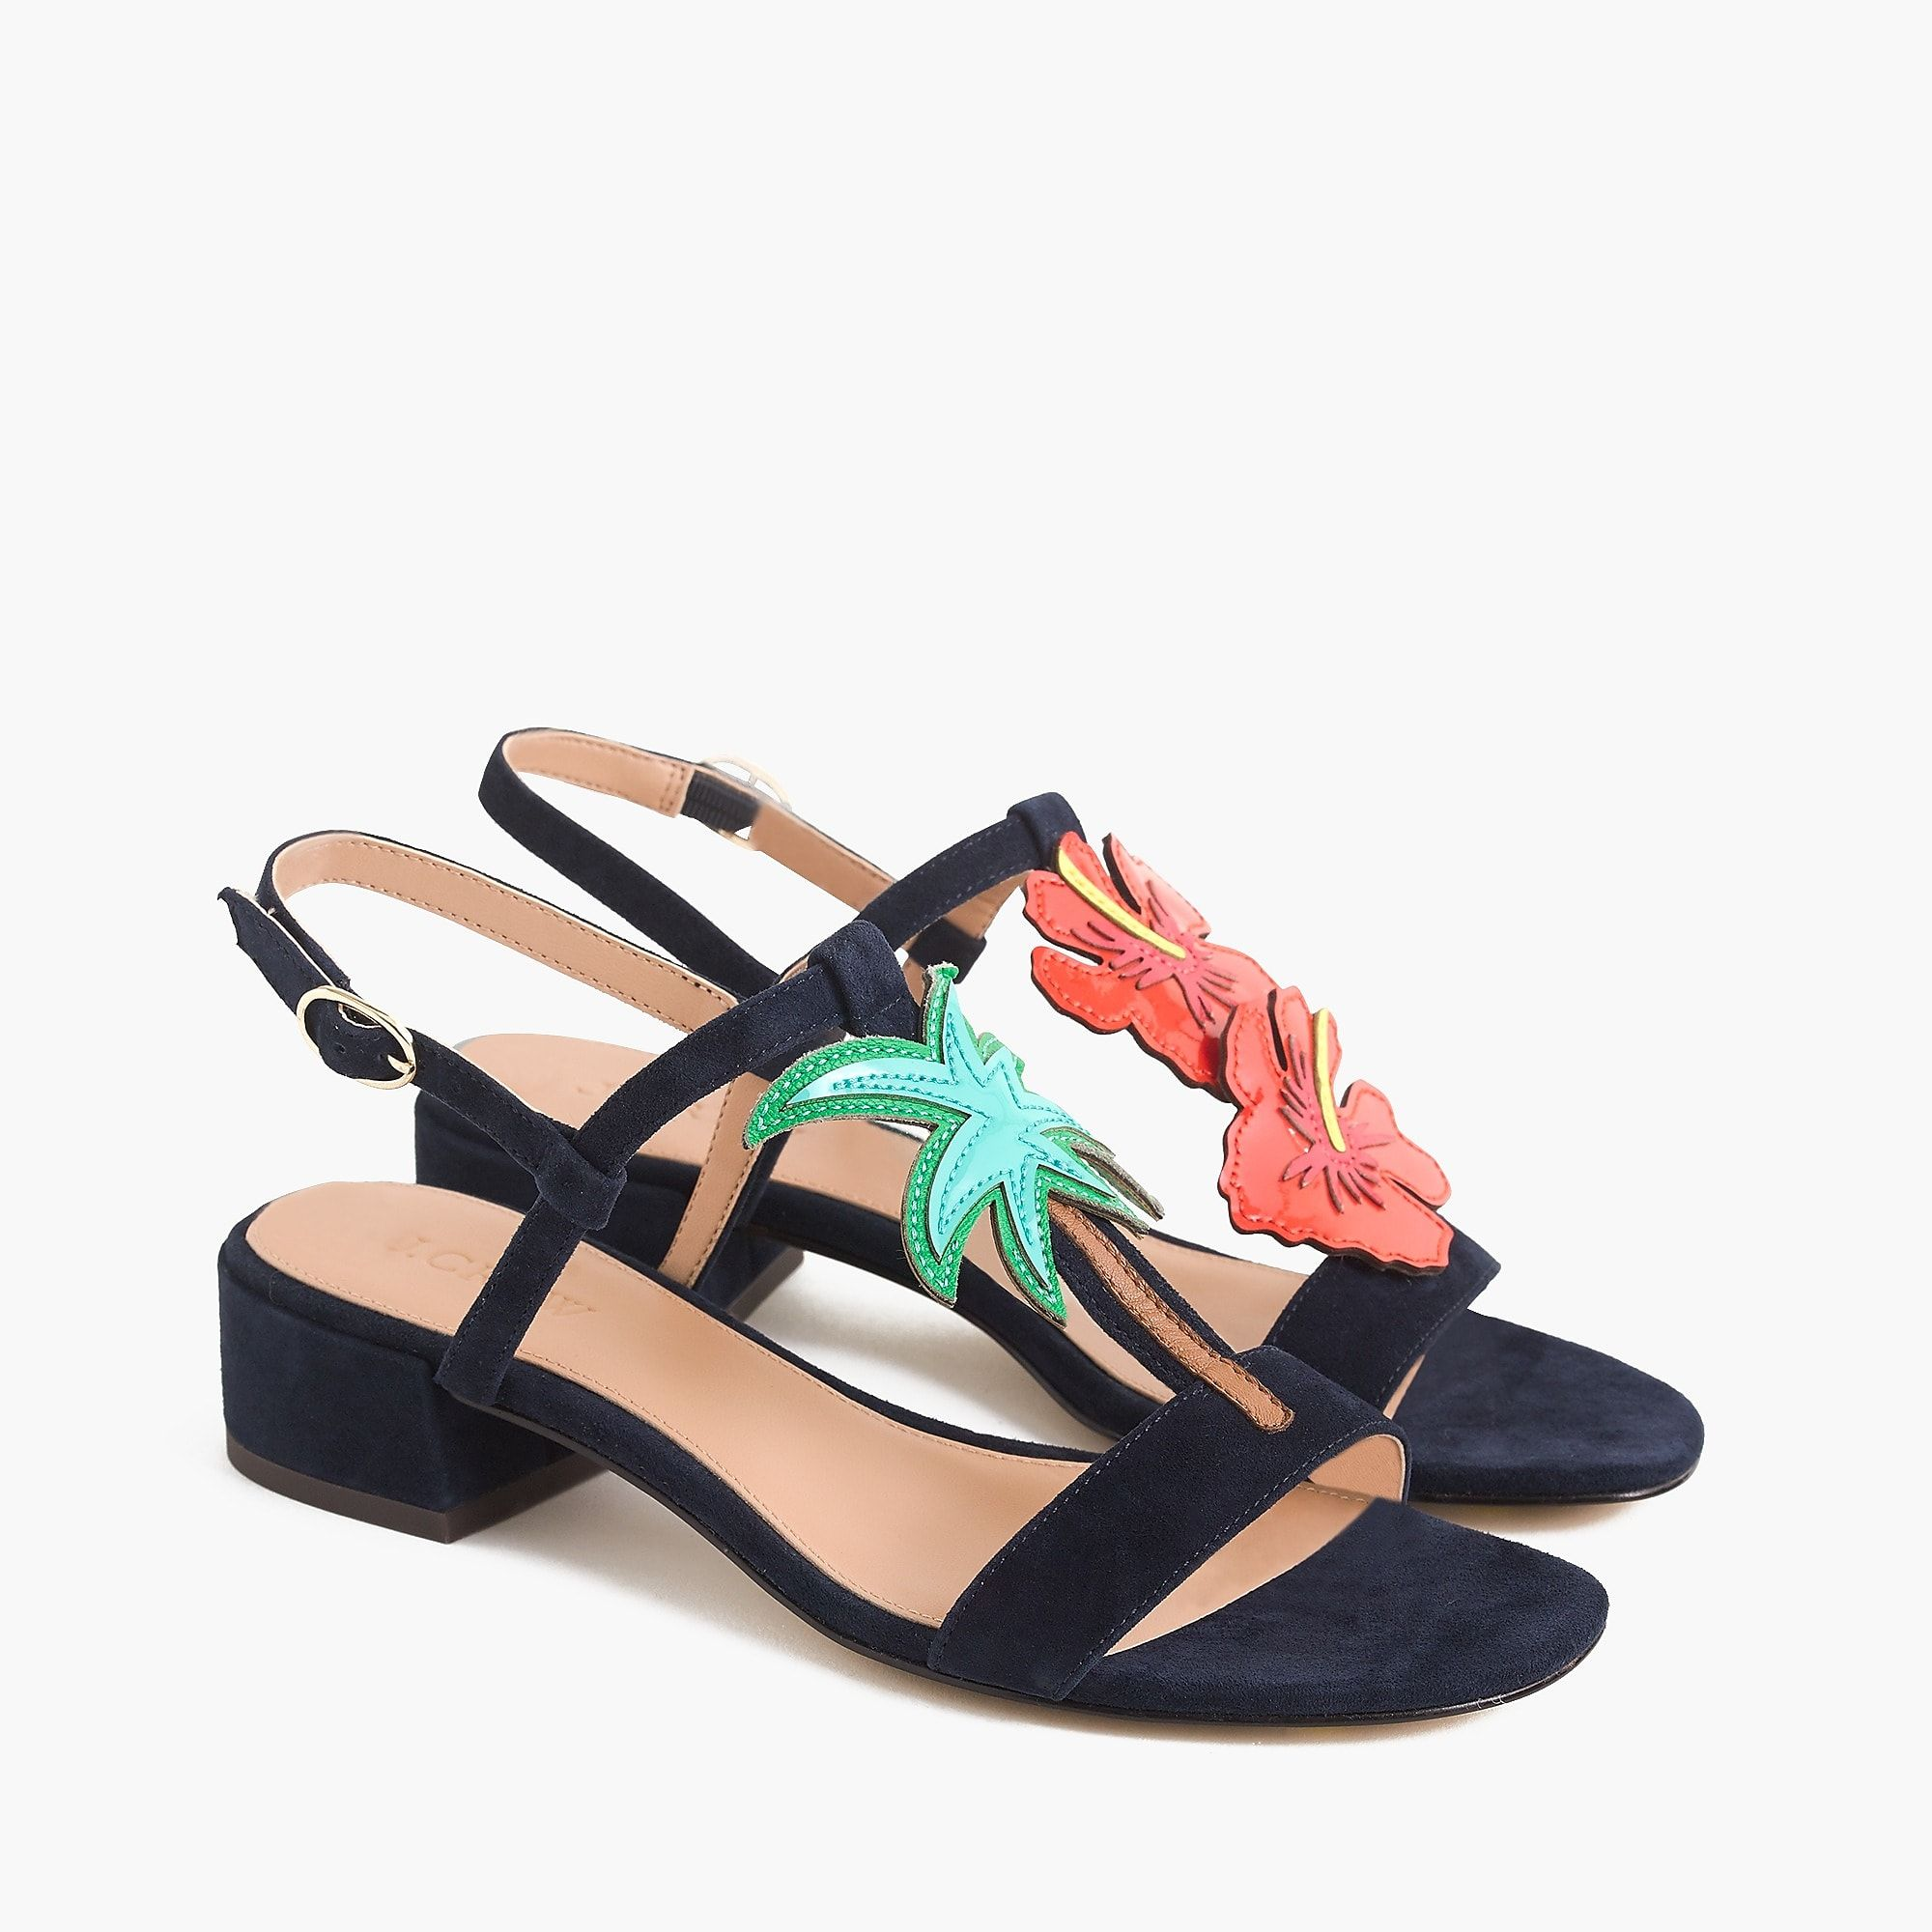 63388af4306 Women s Multistripe Cora Crisscross Sandals - Women s Sandals